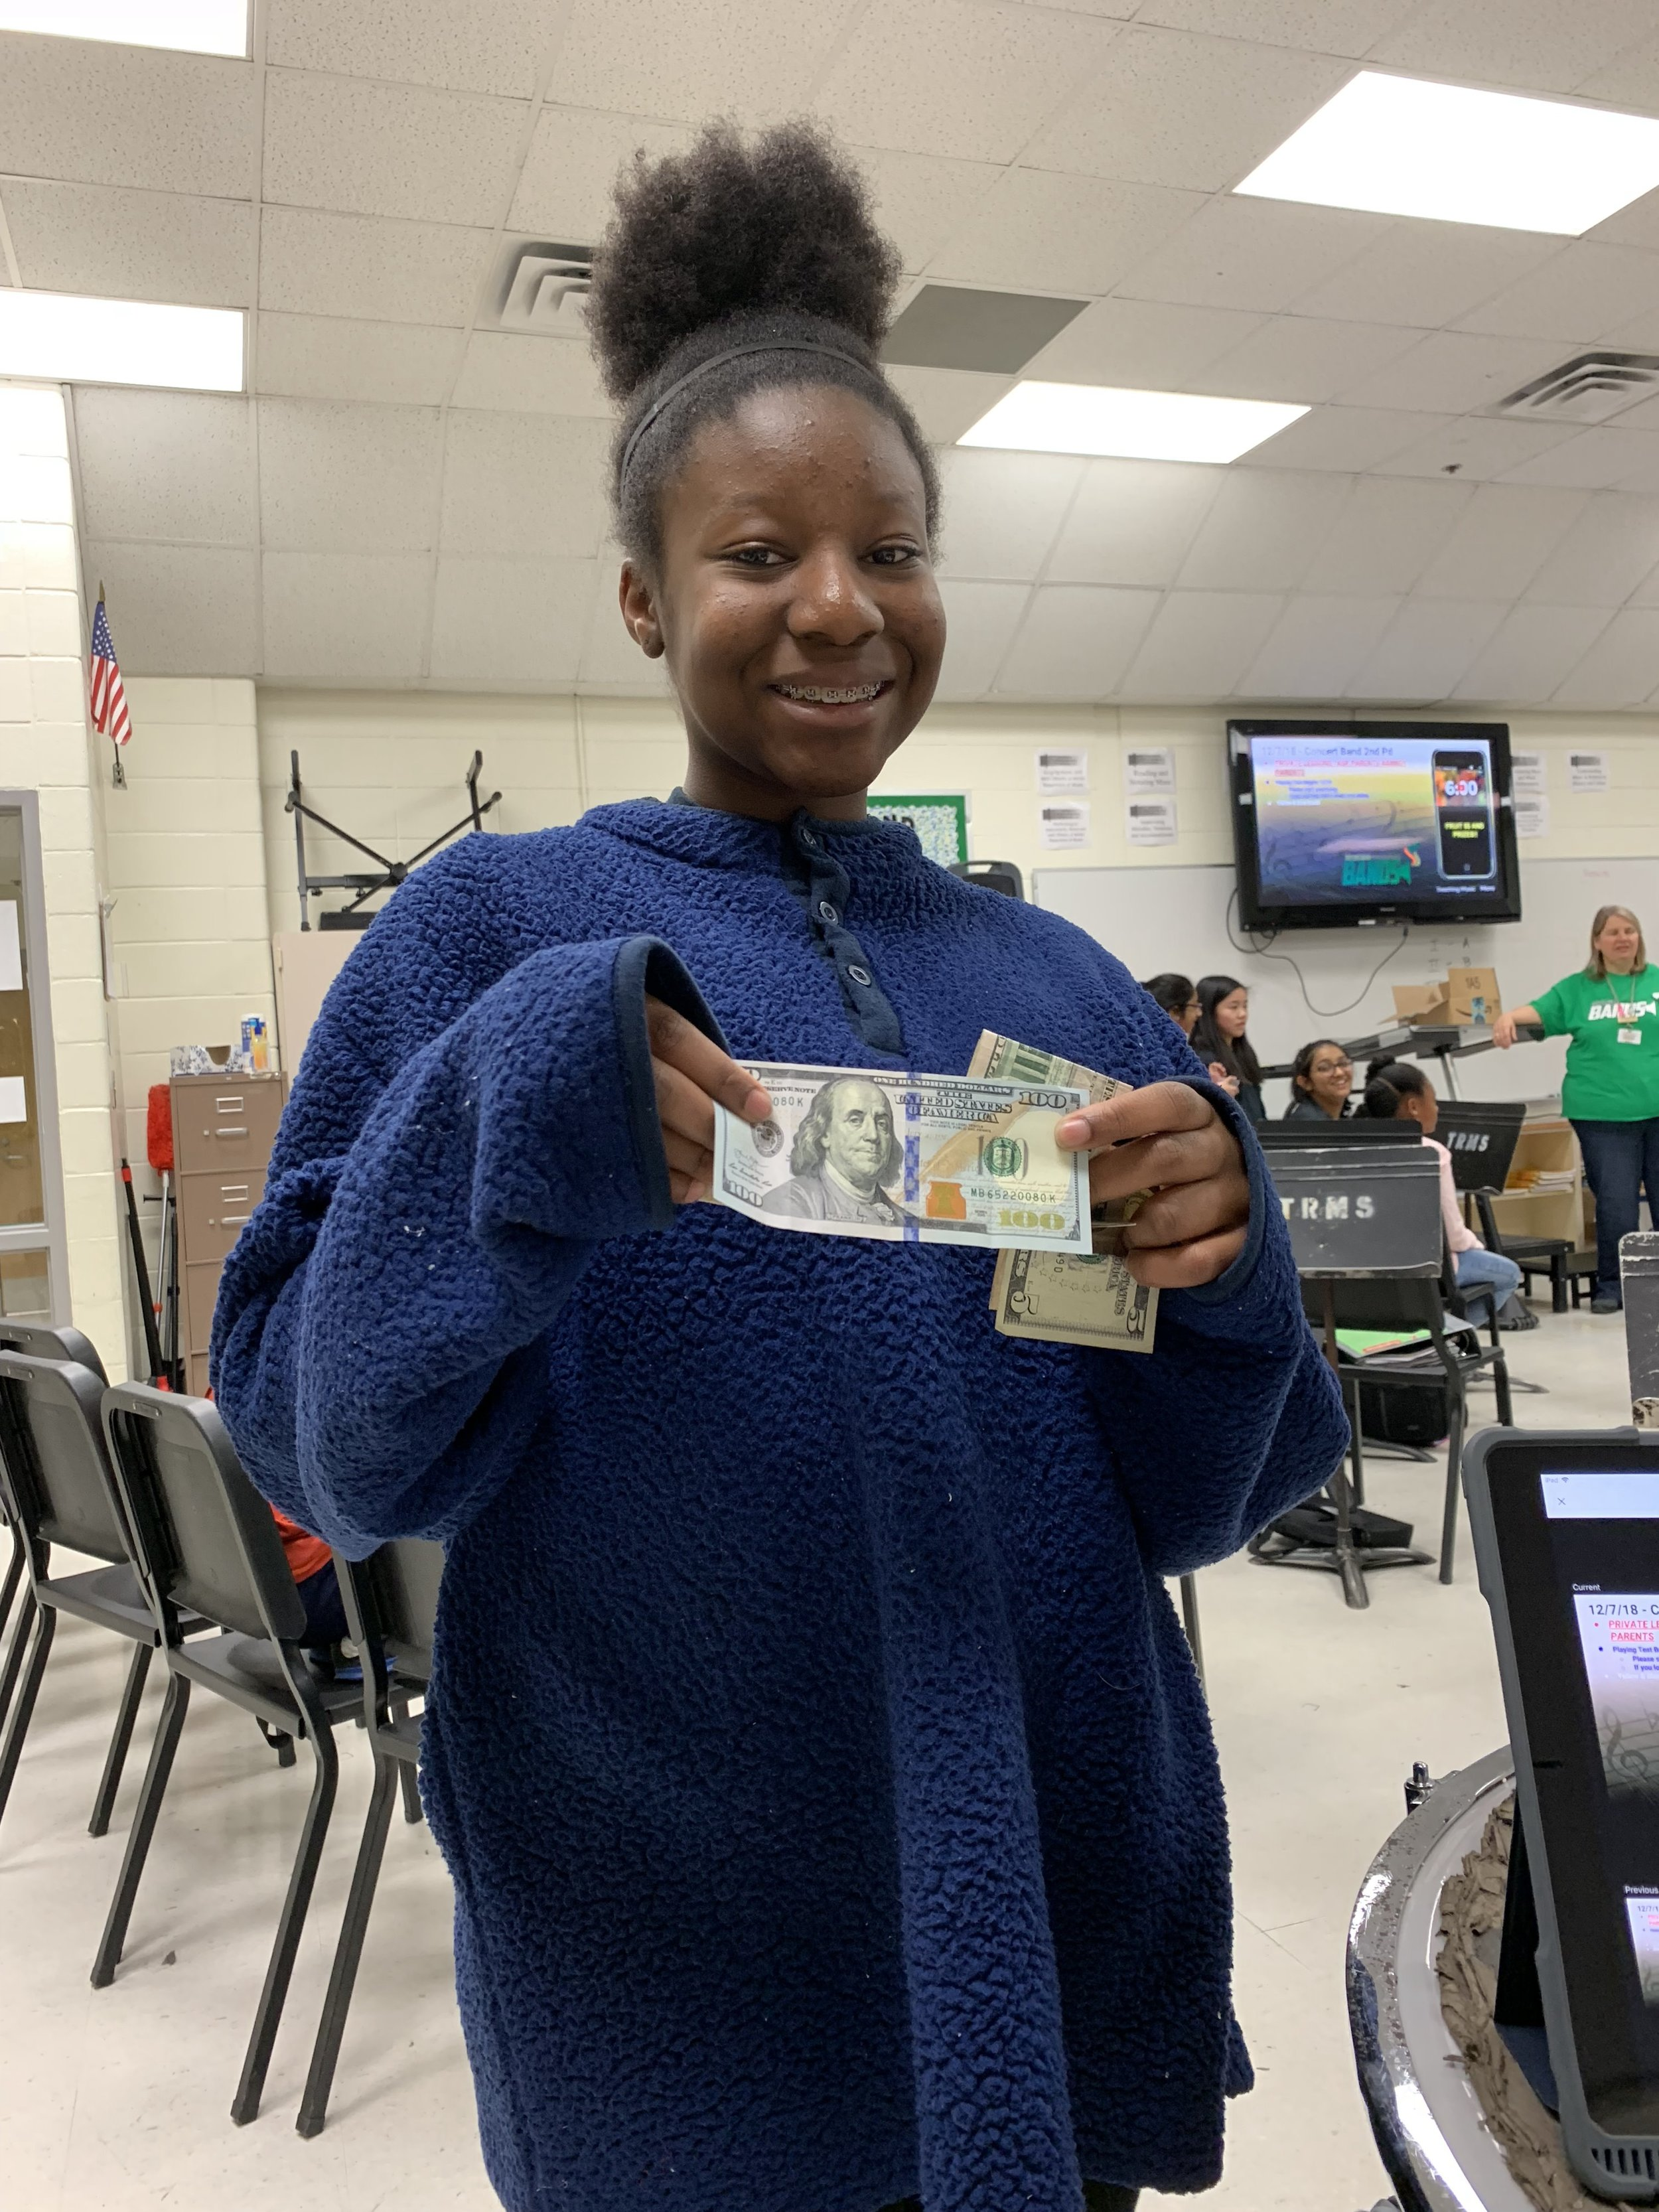 Dami was the lucky one to draw the $100 from the fruit sale!